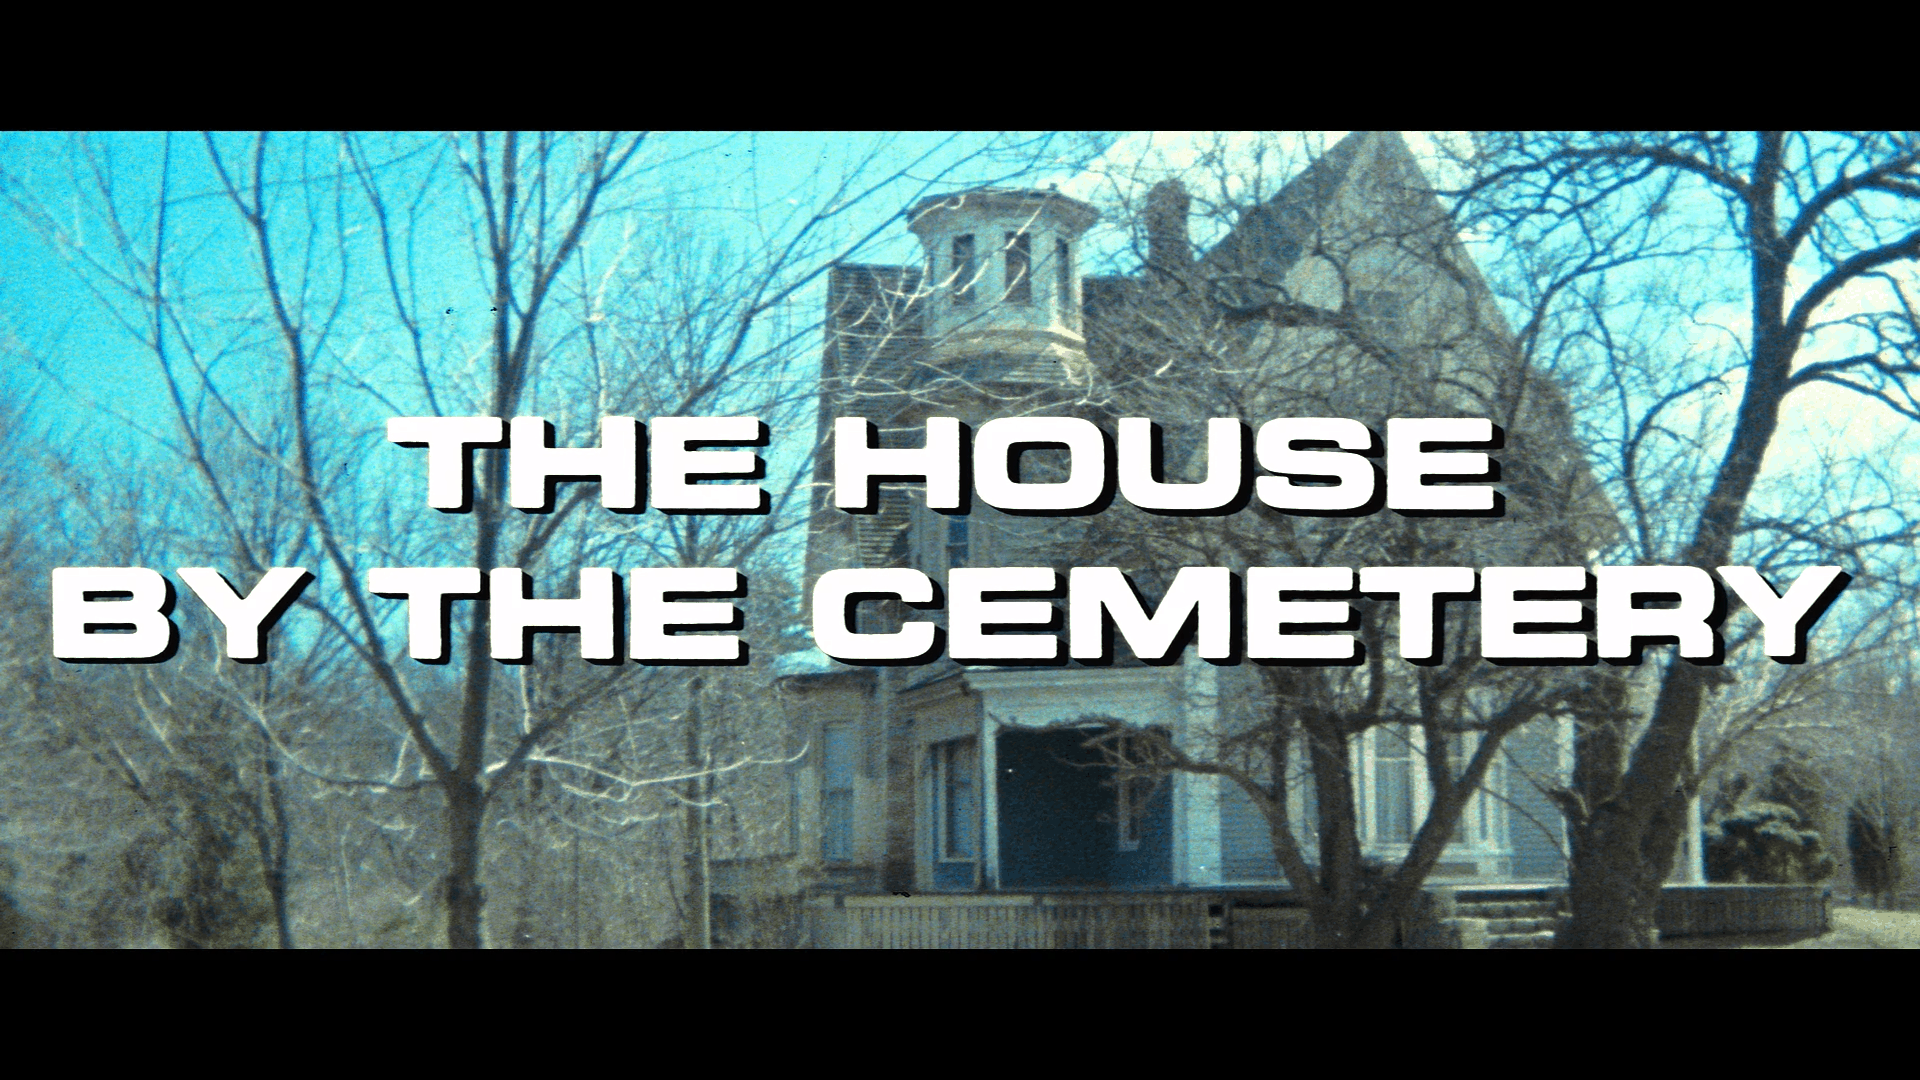 the house by the cemetery blu ray title